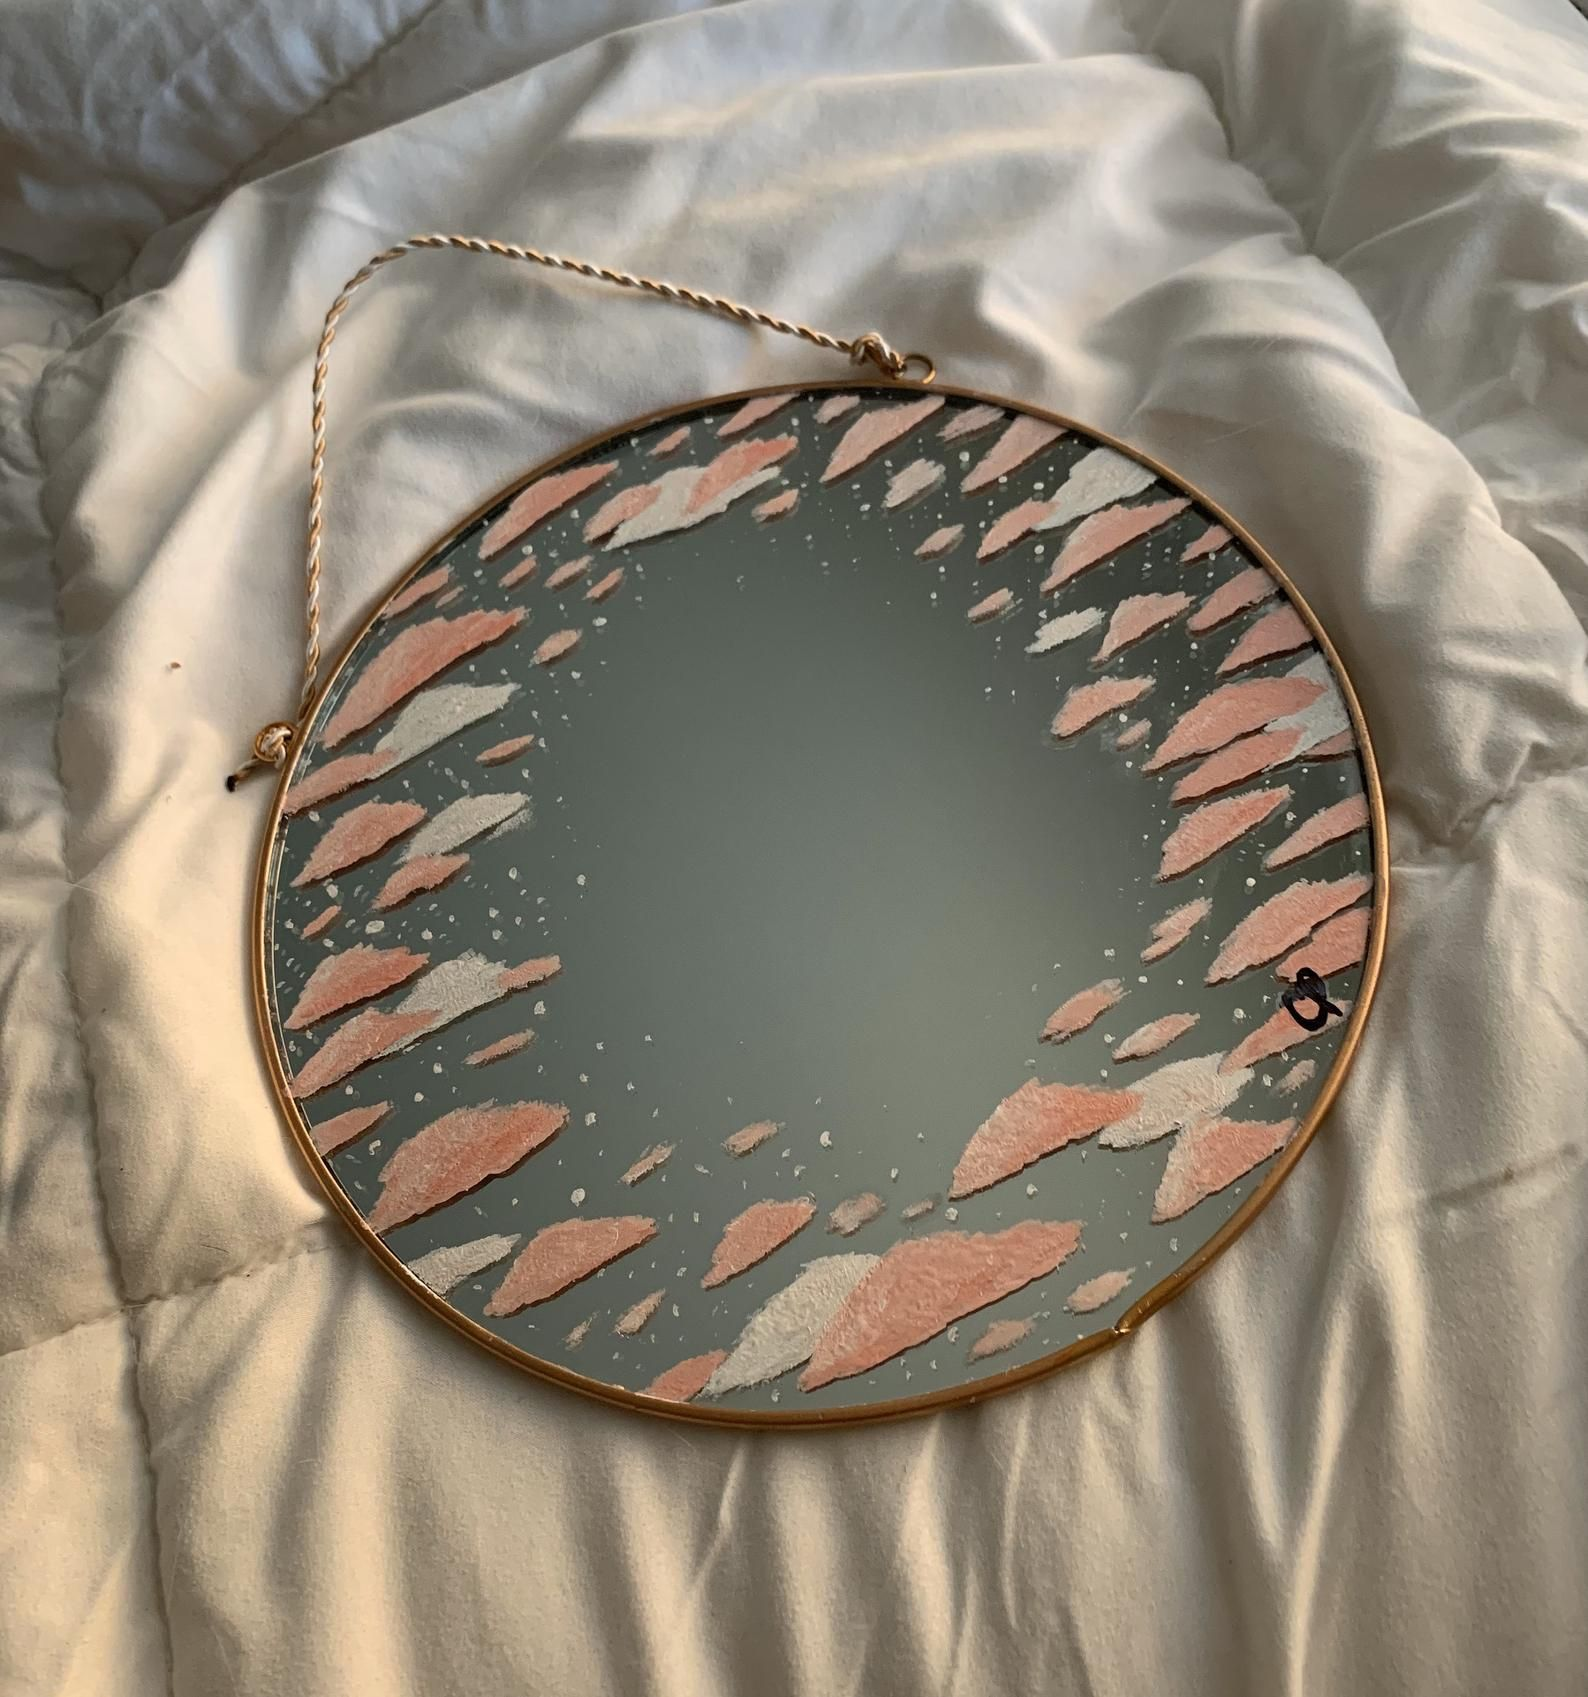 Blush Cloud Mirror Etsy in 2020 (With images) Mirror